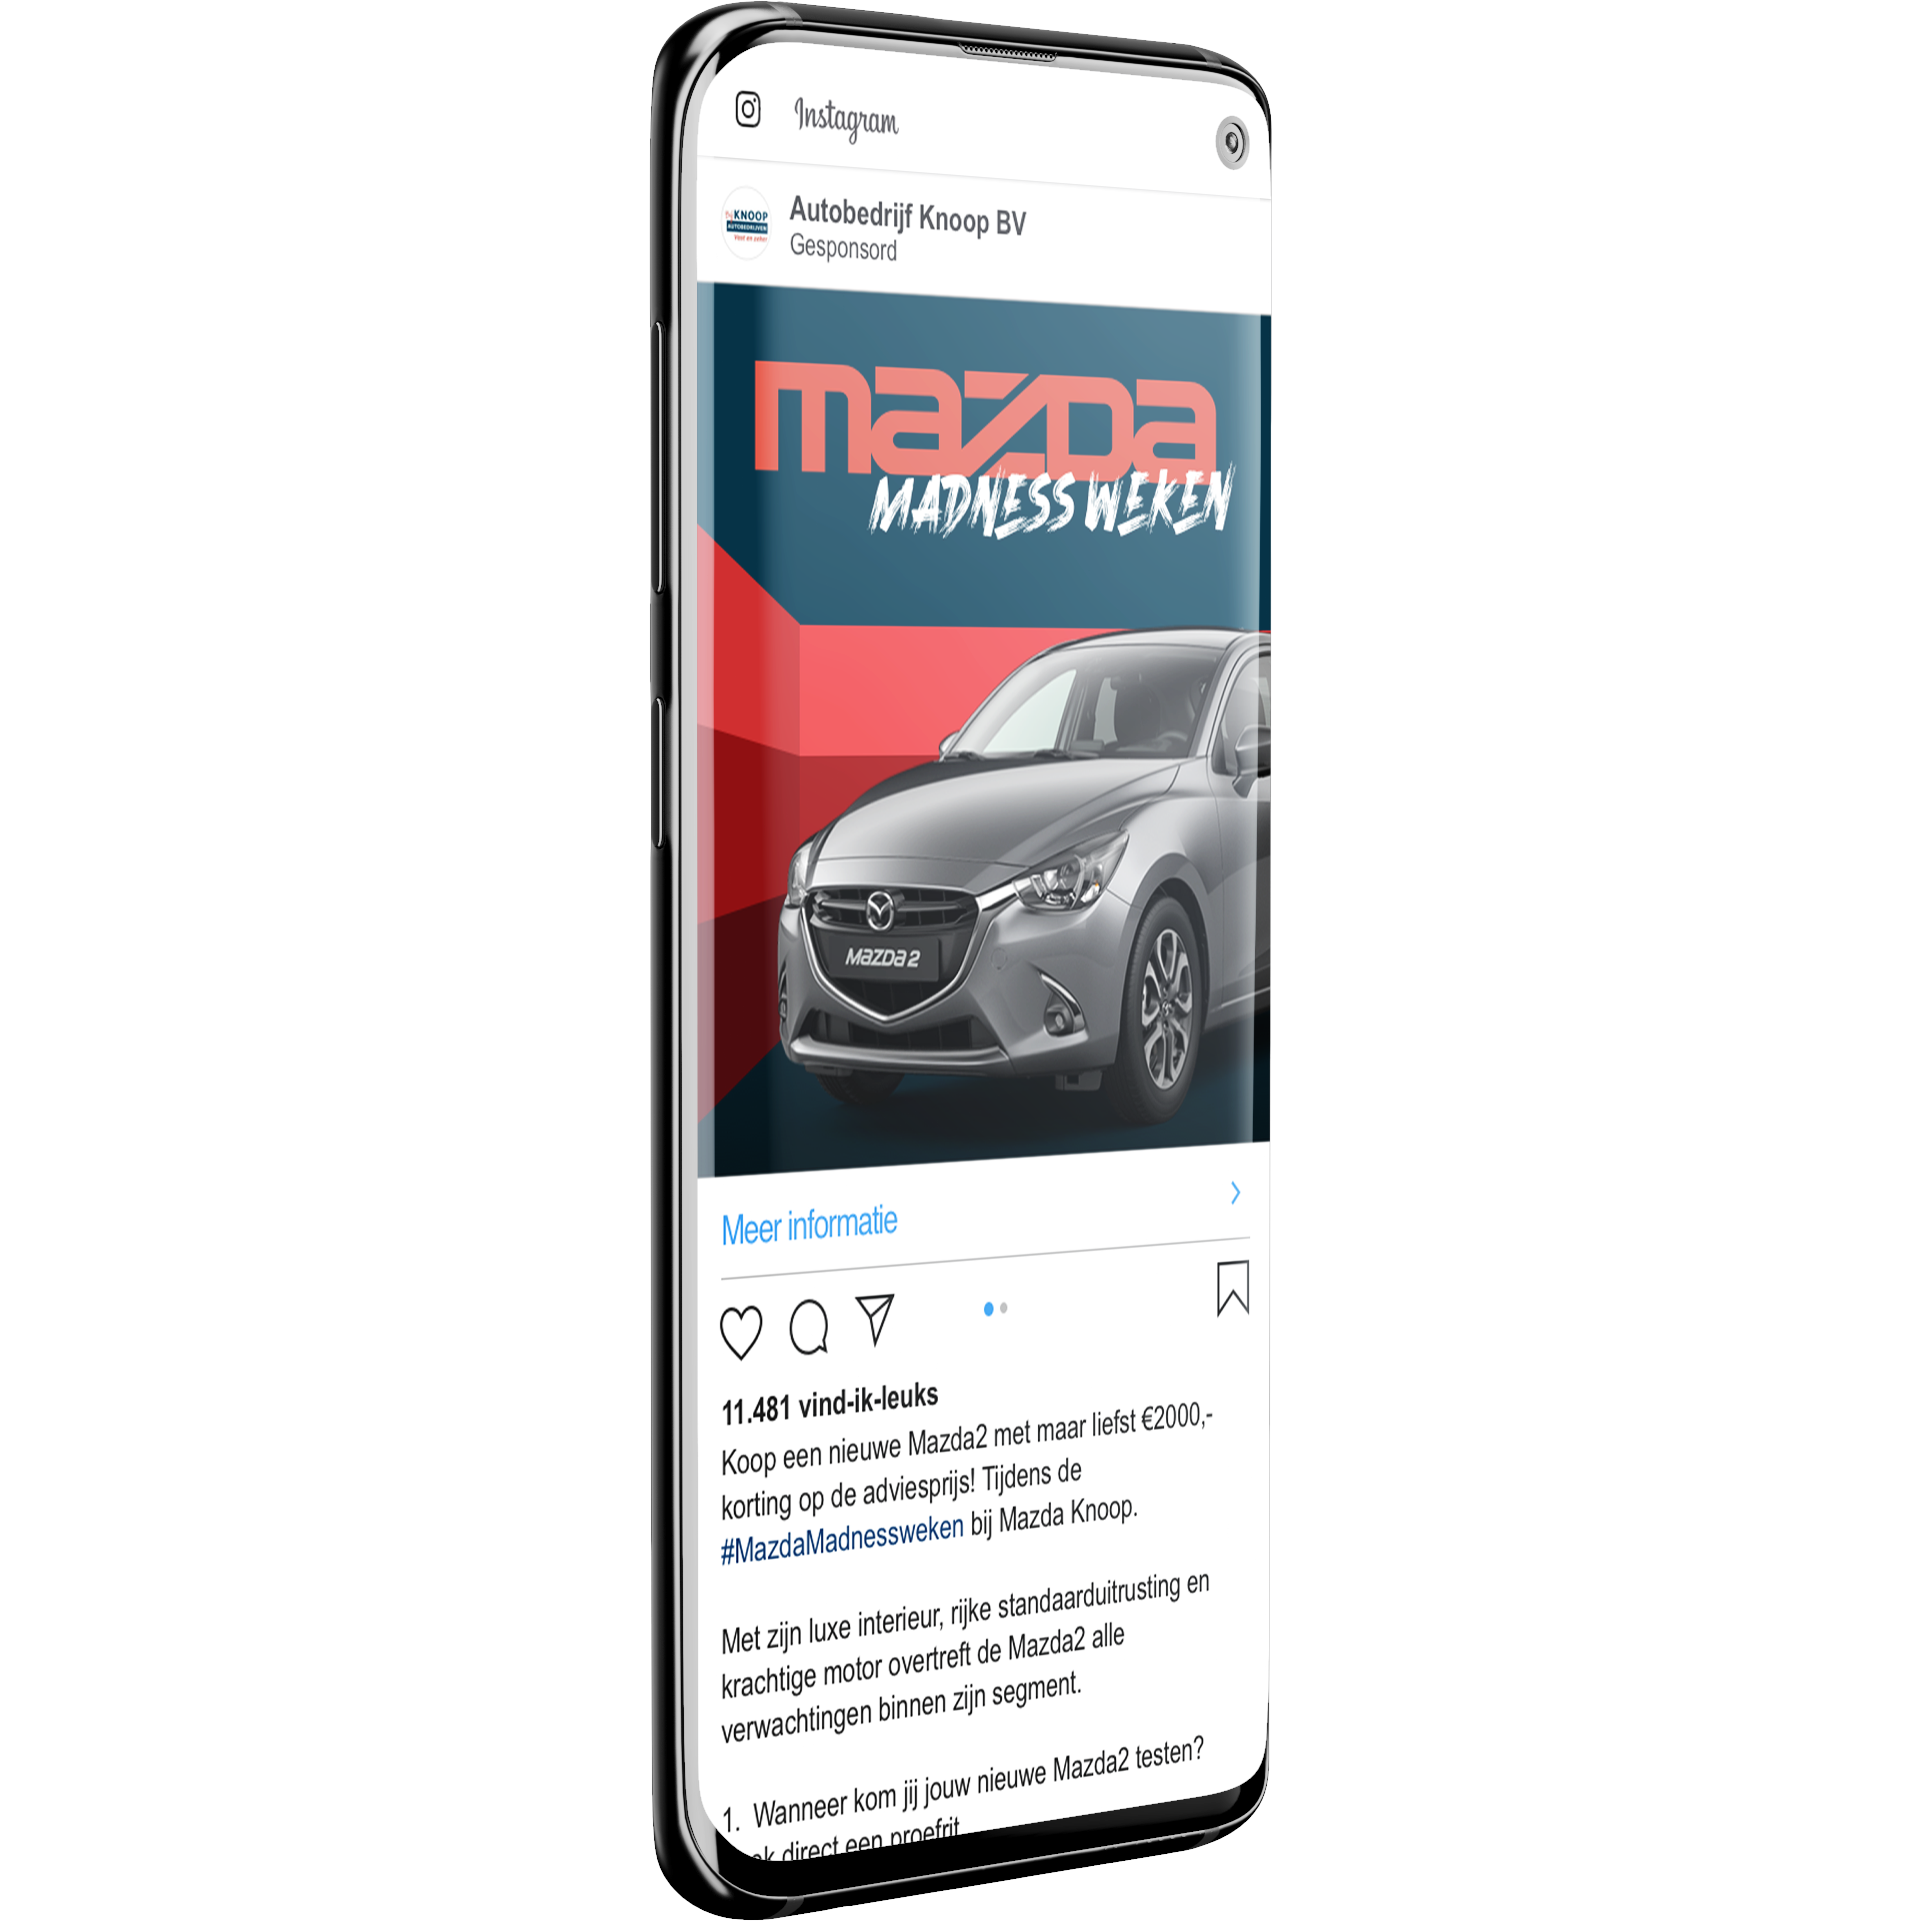 Mazda dealer Knoop